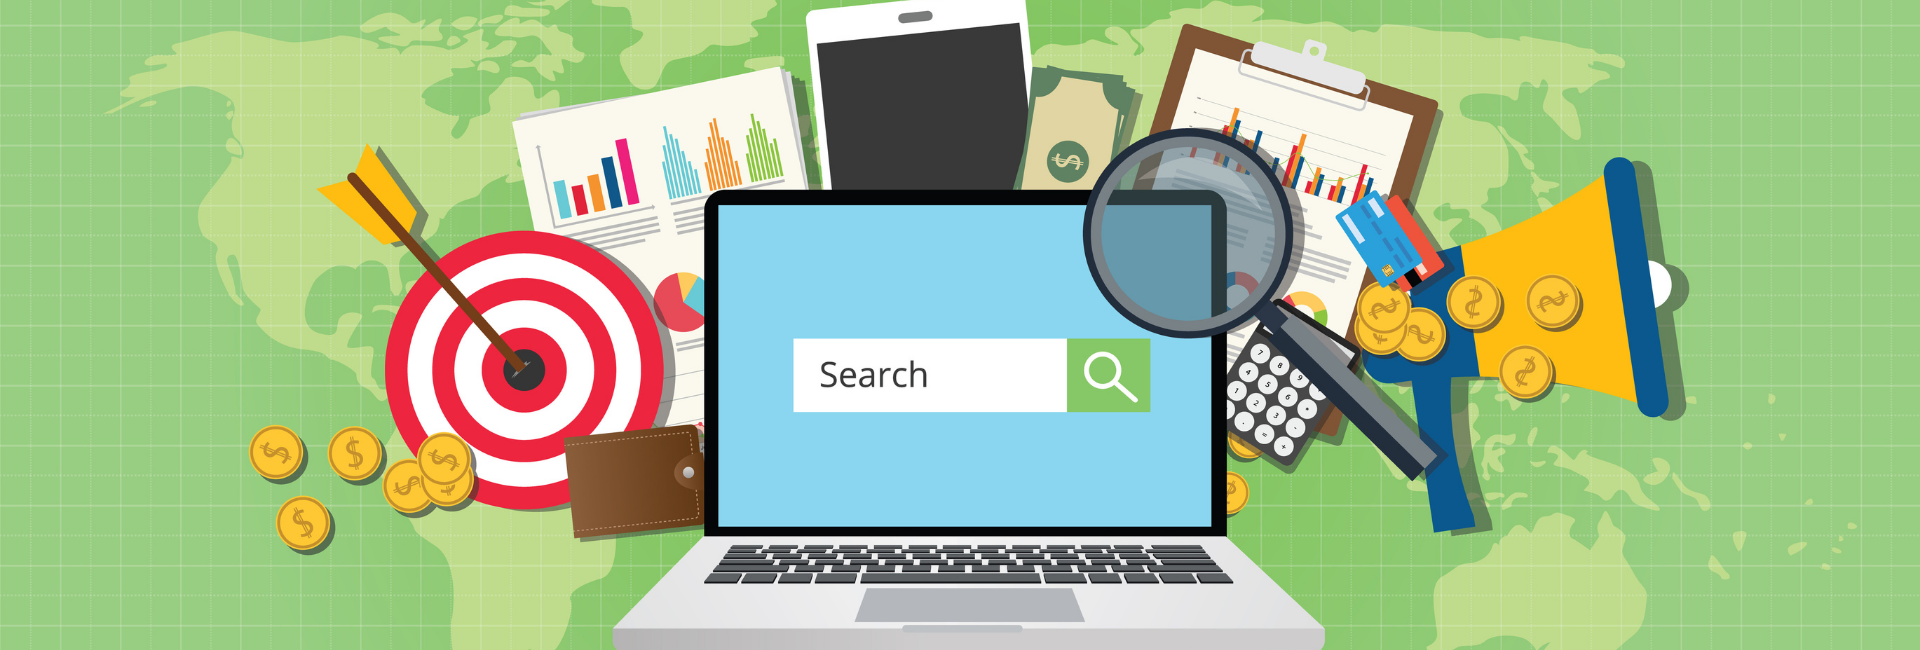 search engine marketing approach and process